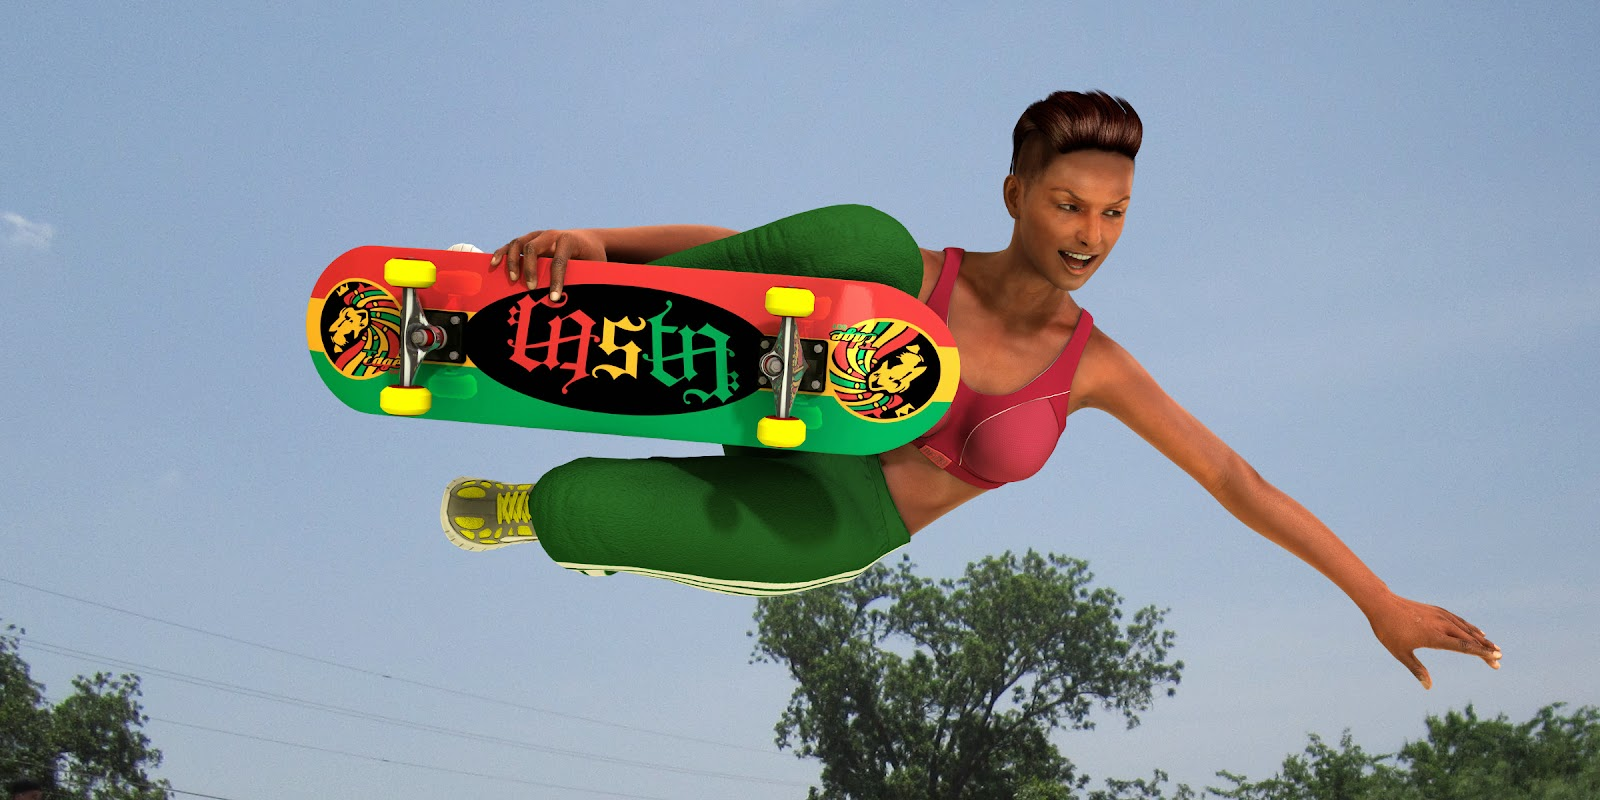 The Word Rasta Skateboard: The NeverWrong Ambigram Rasta Skateboard reads both ways.